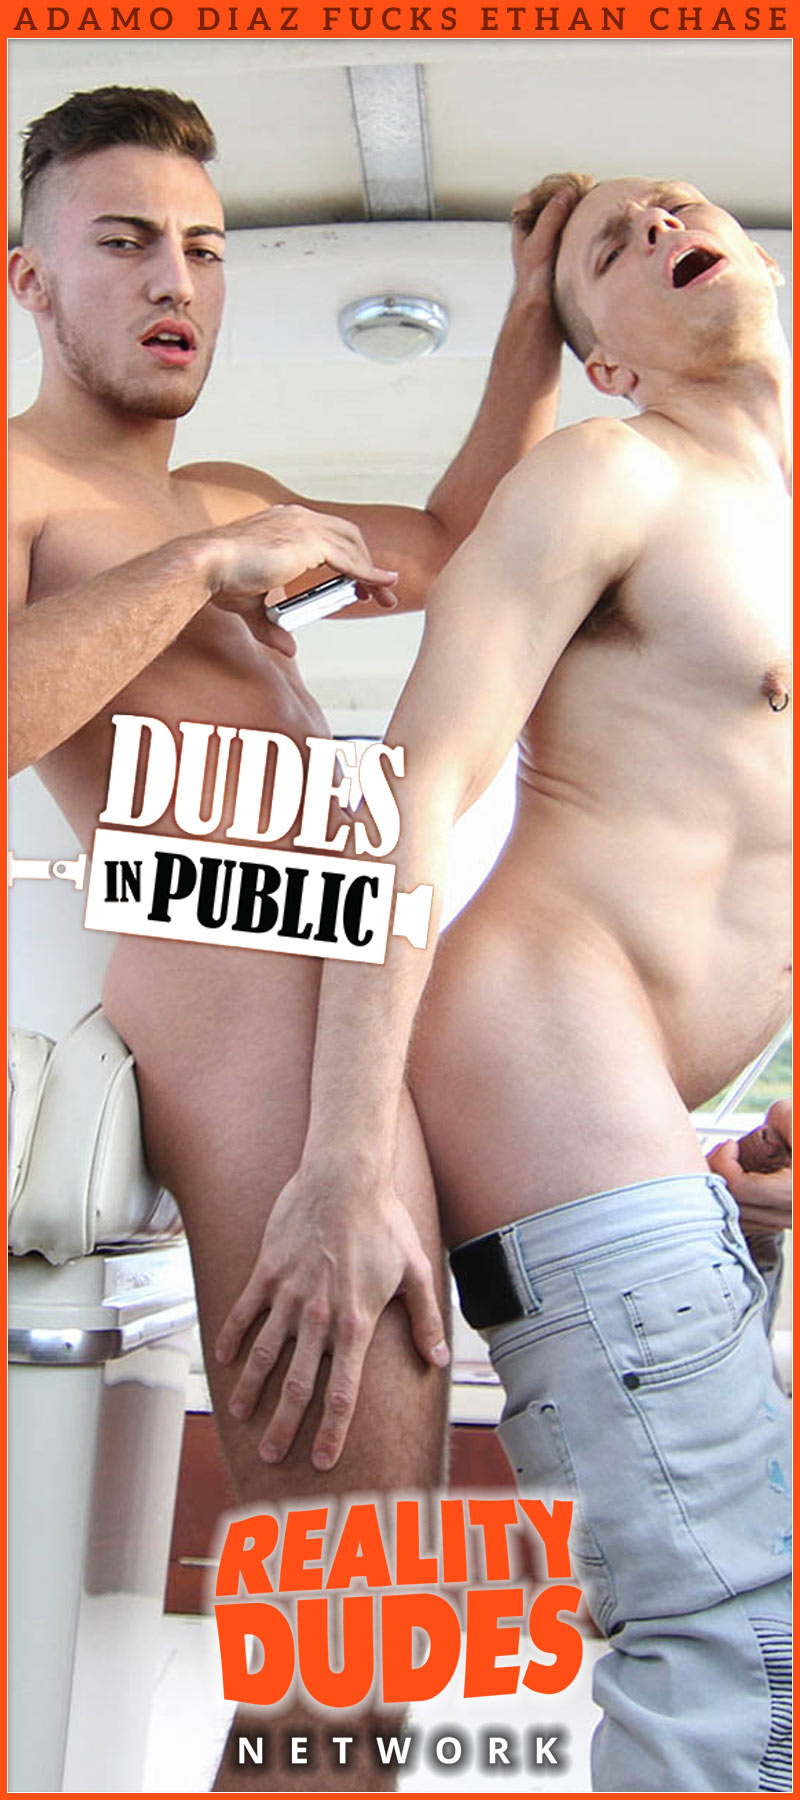 Dudes In Public 33: Pleasure Boat (with Adamo Diaz Fucks Ethan Chase)